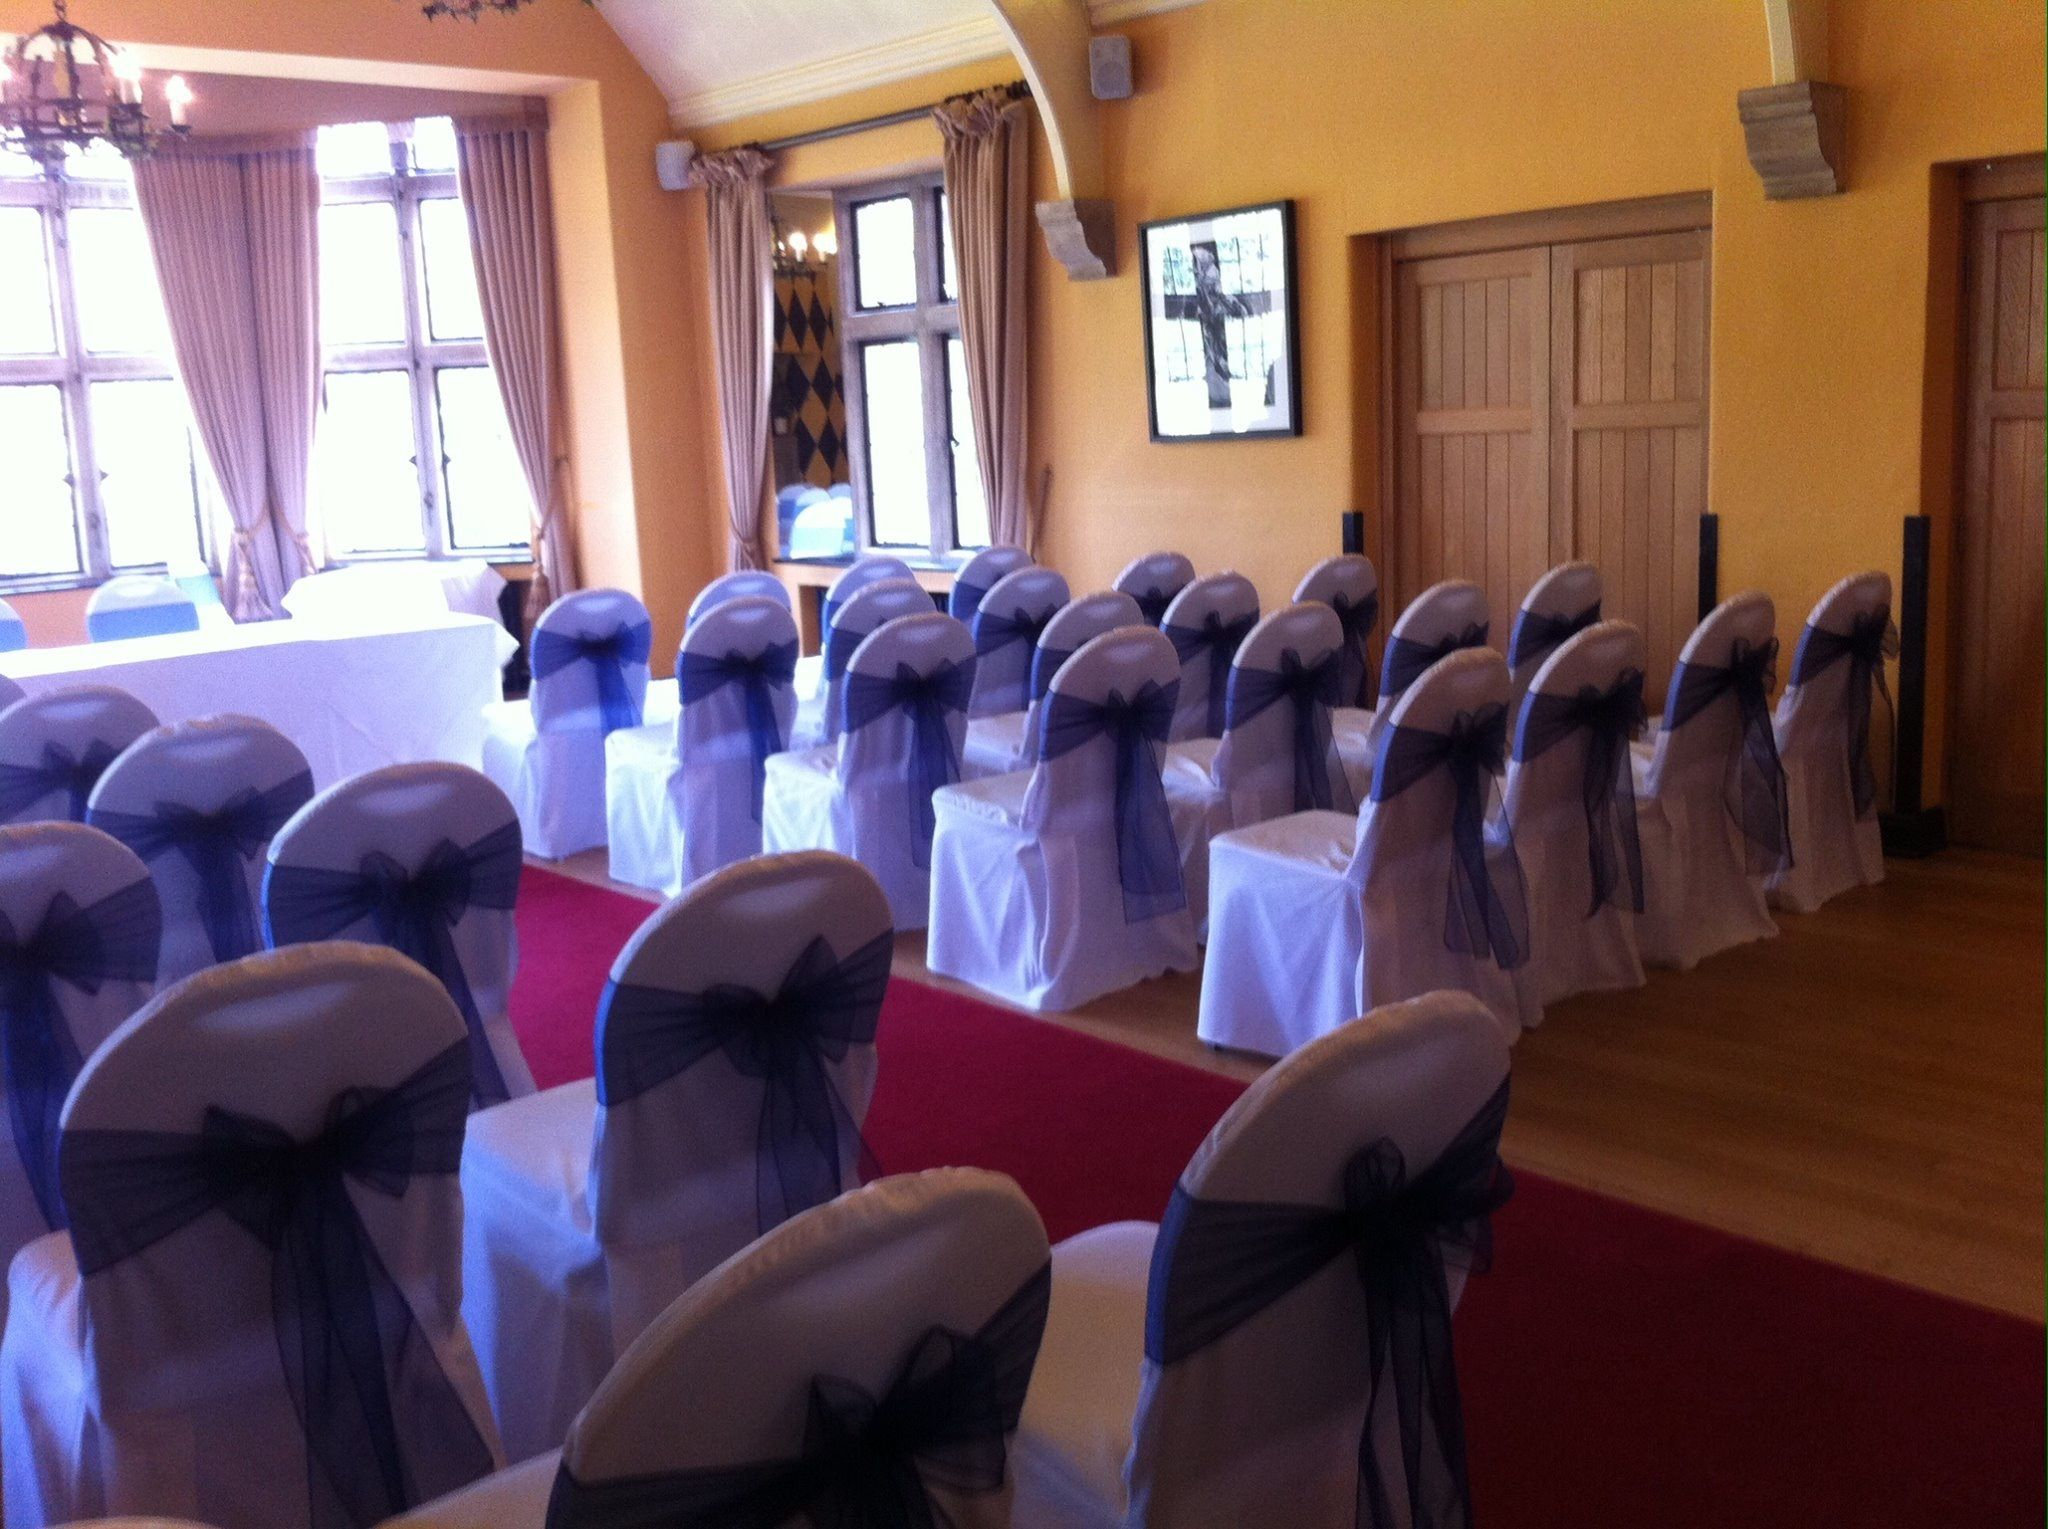 Chair covers with navy sashes